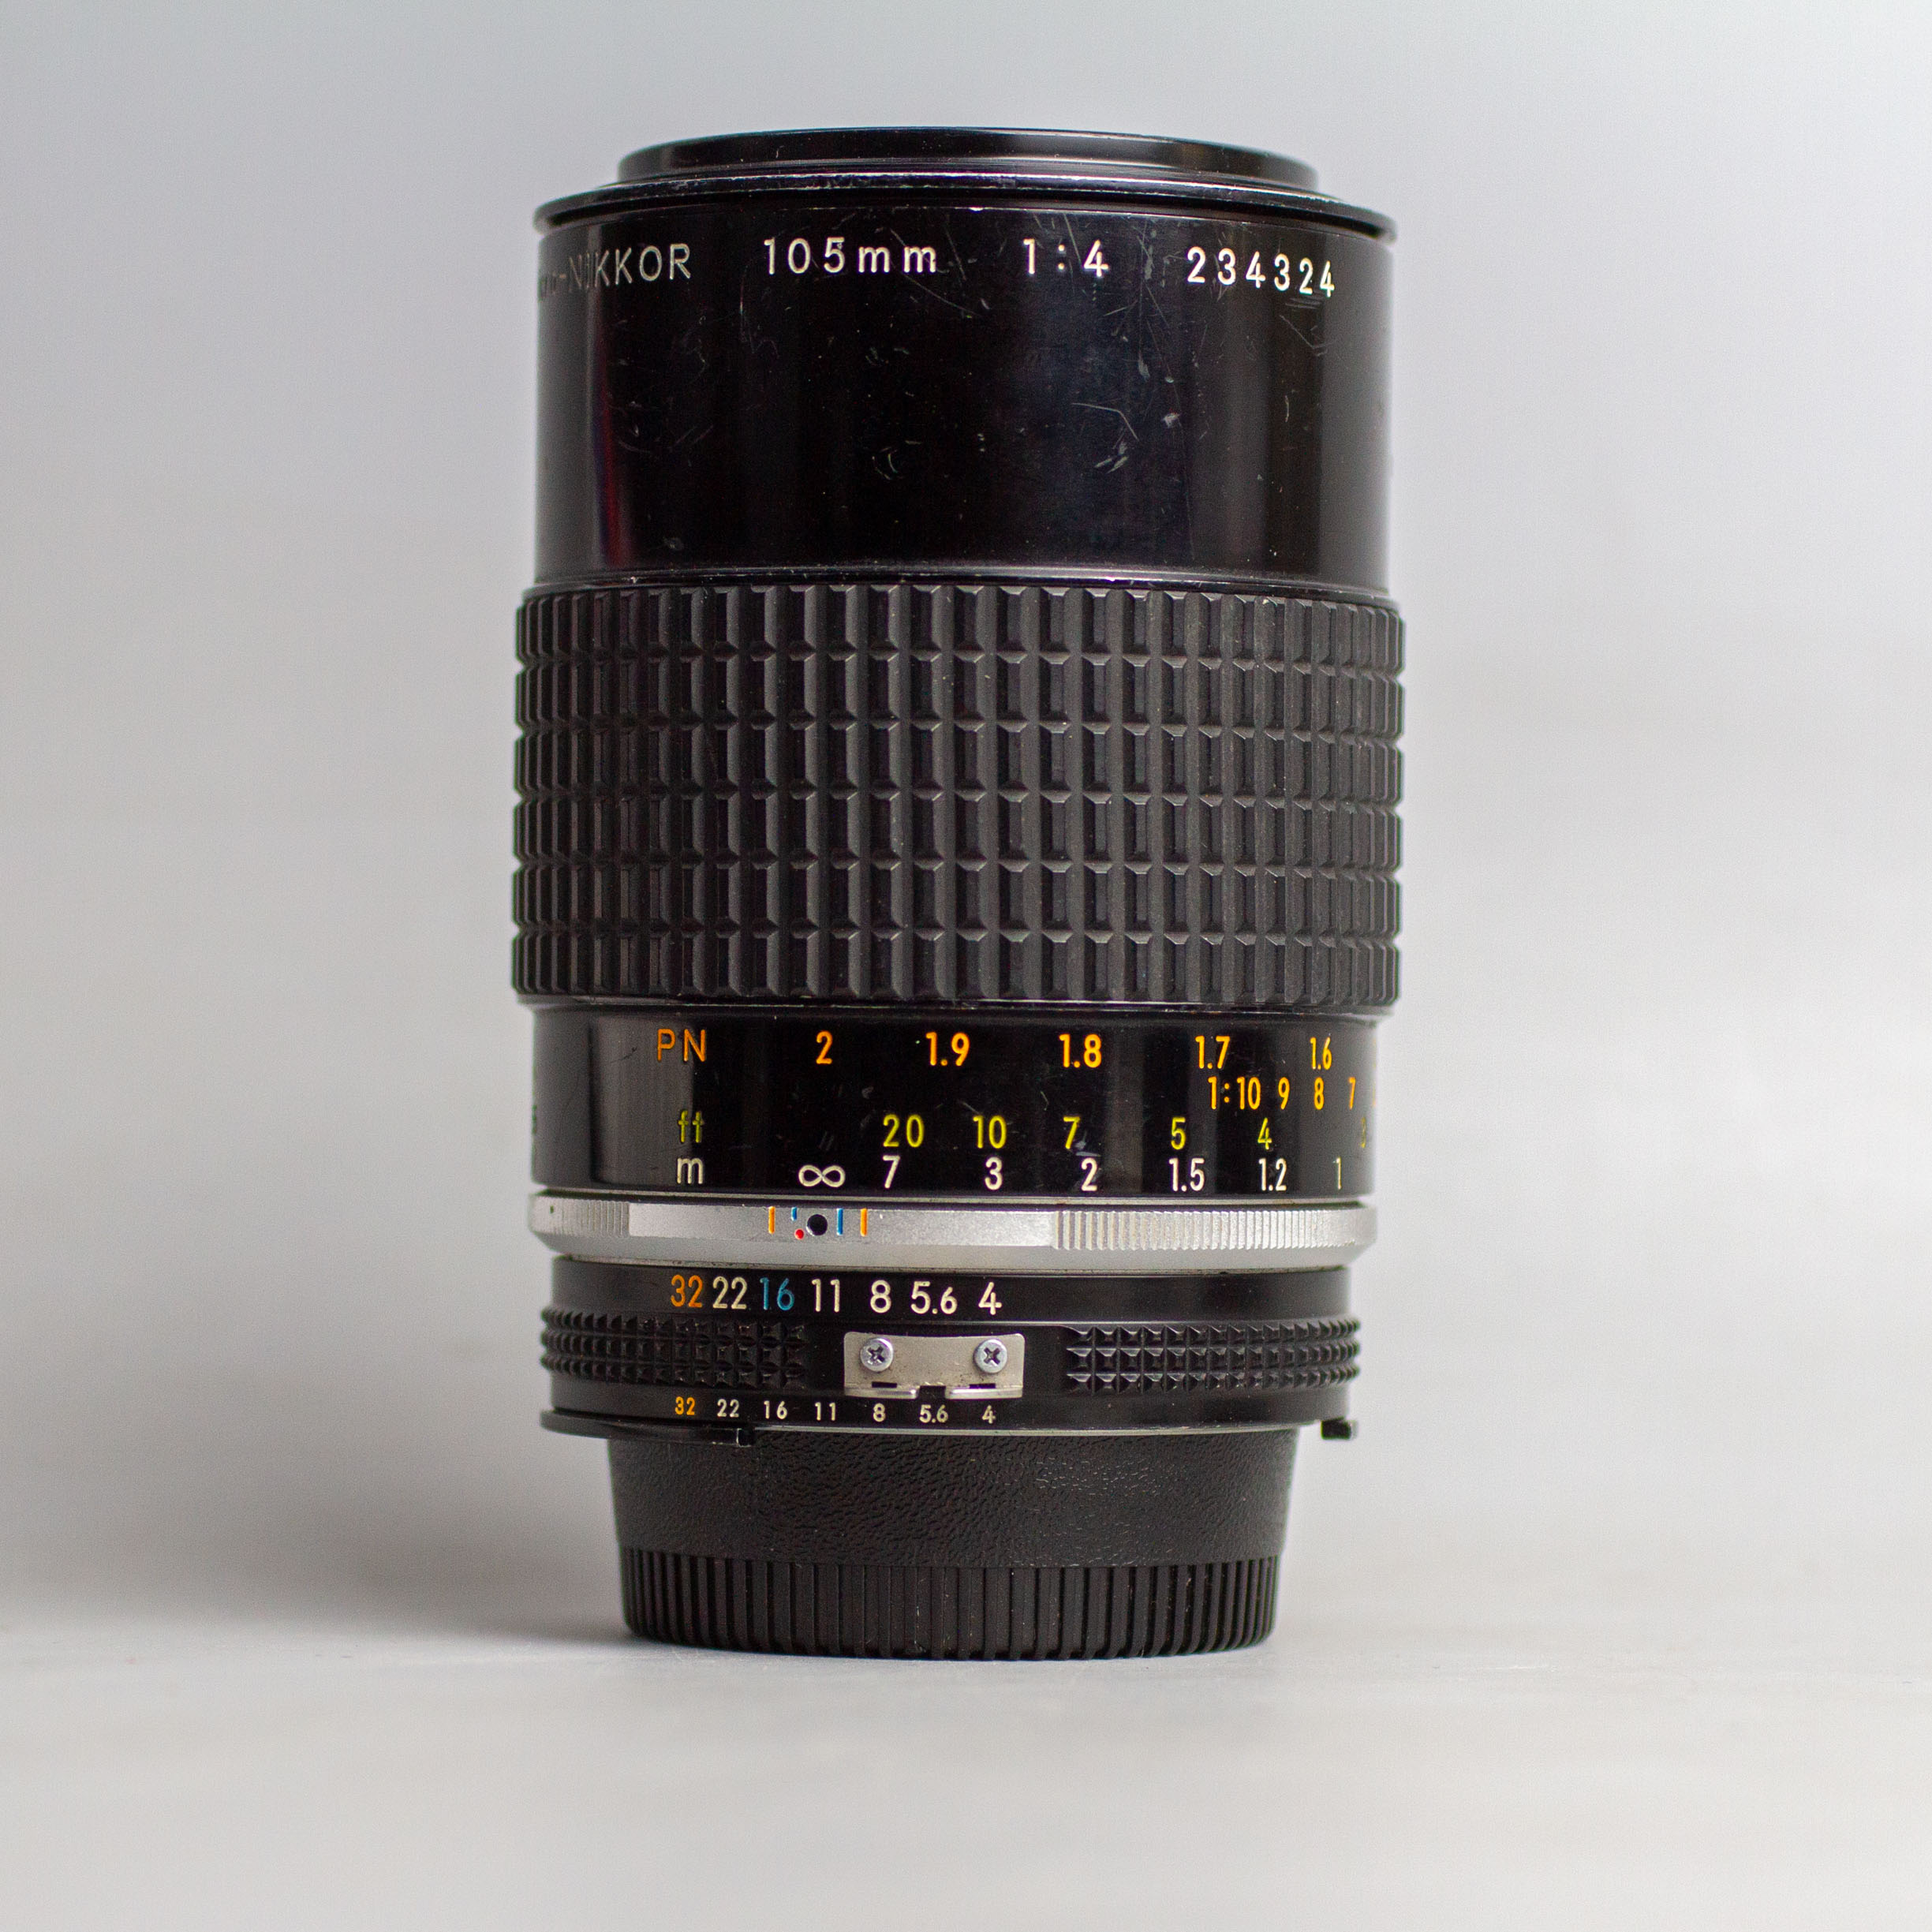 nikon-mf-105mm-f4-0-ais-macro-1-2-105-4-0-16932